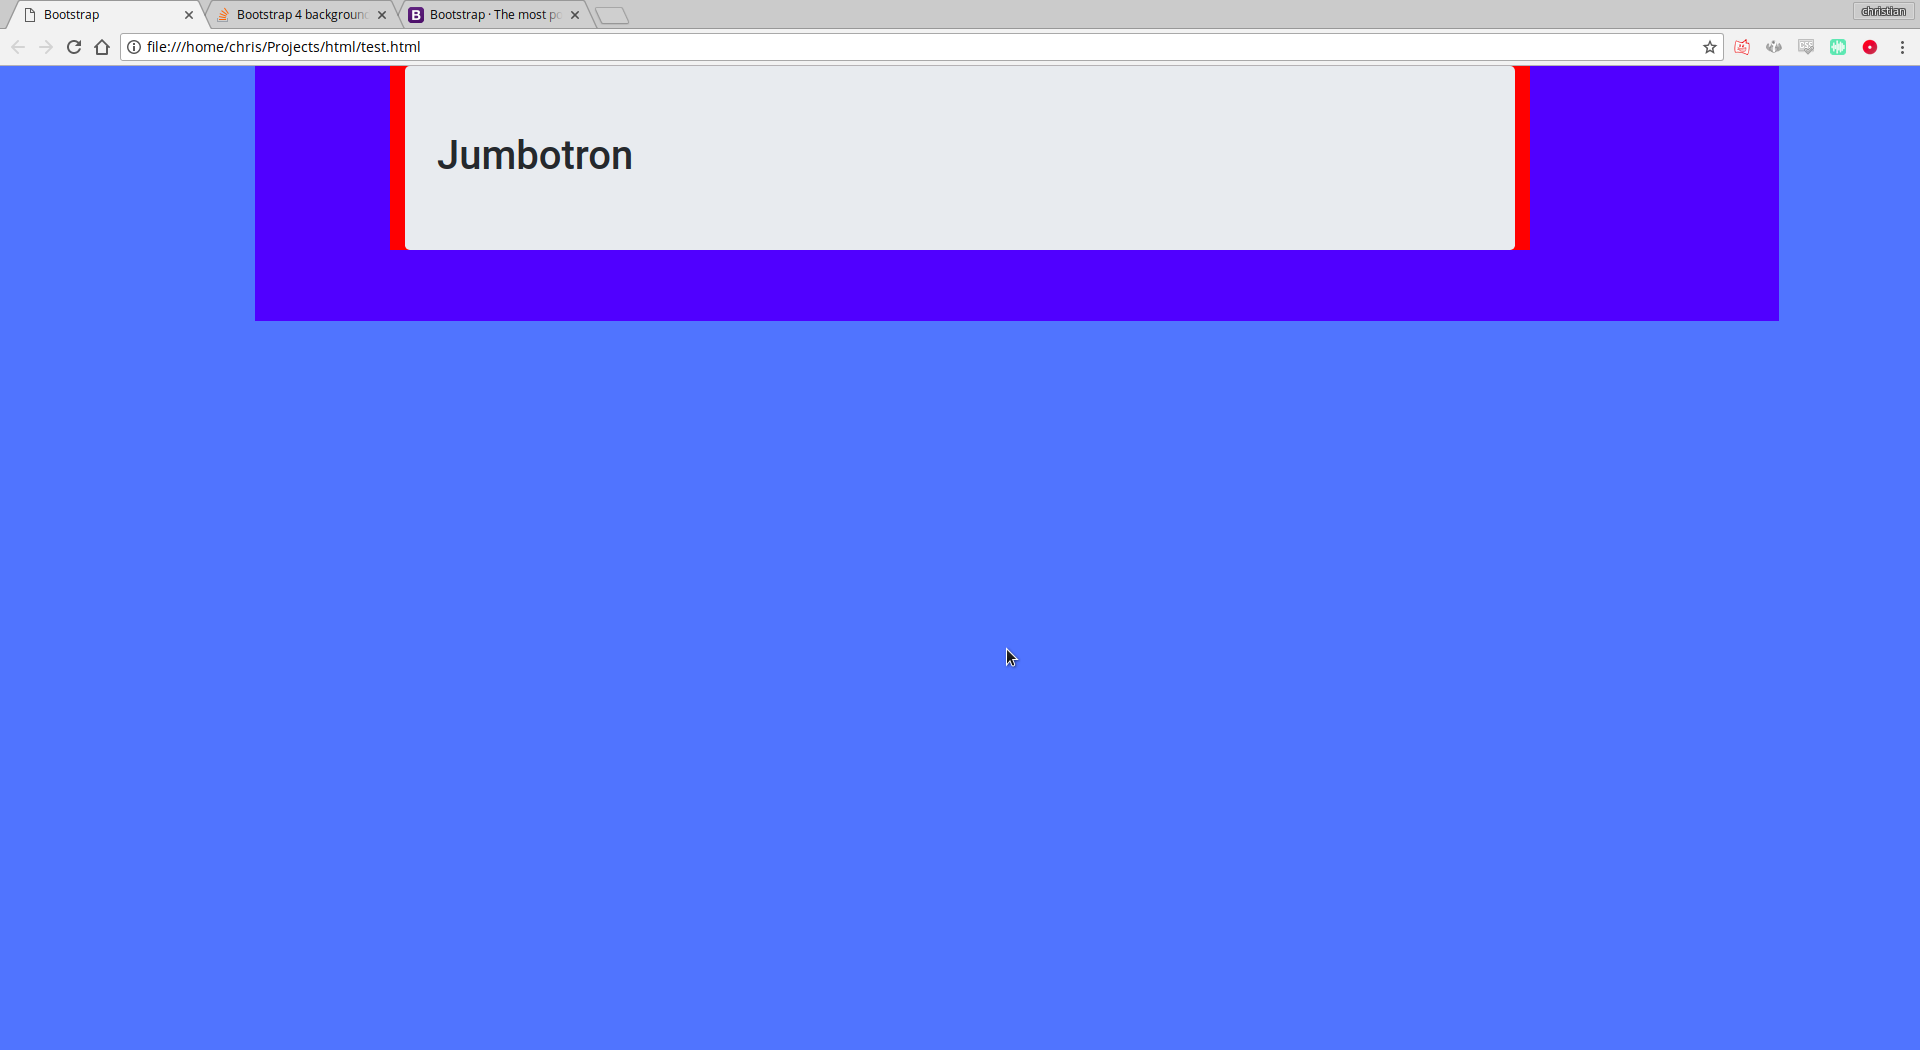 Bootstrap 4 background color looks completely different on Chrome 1920x1050